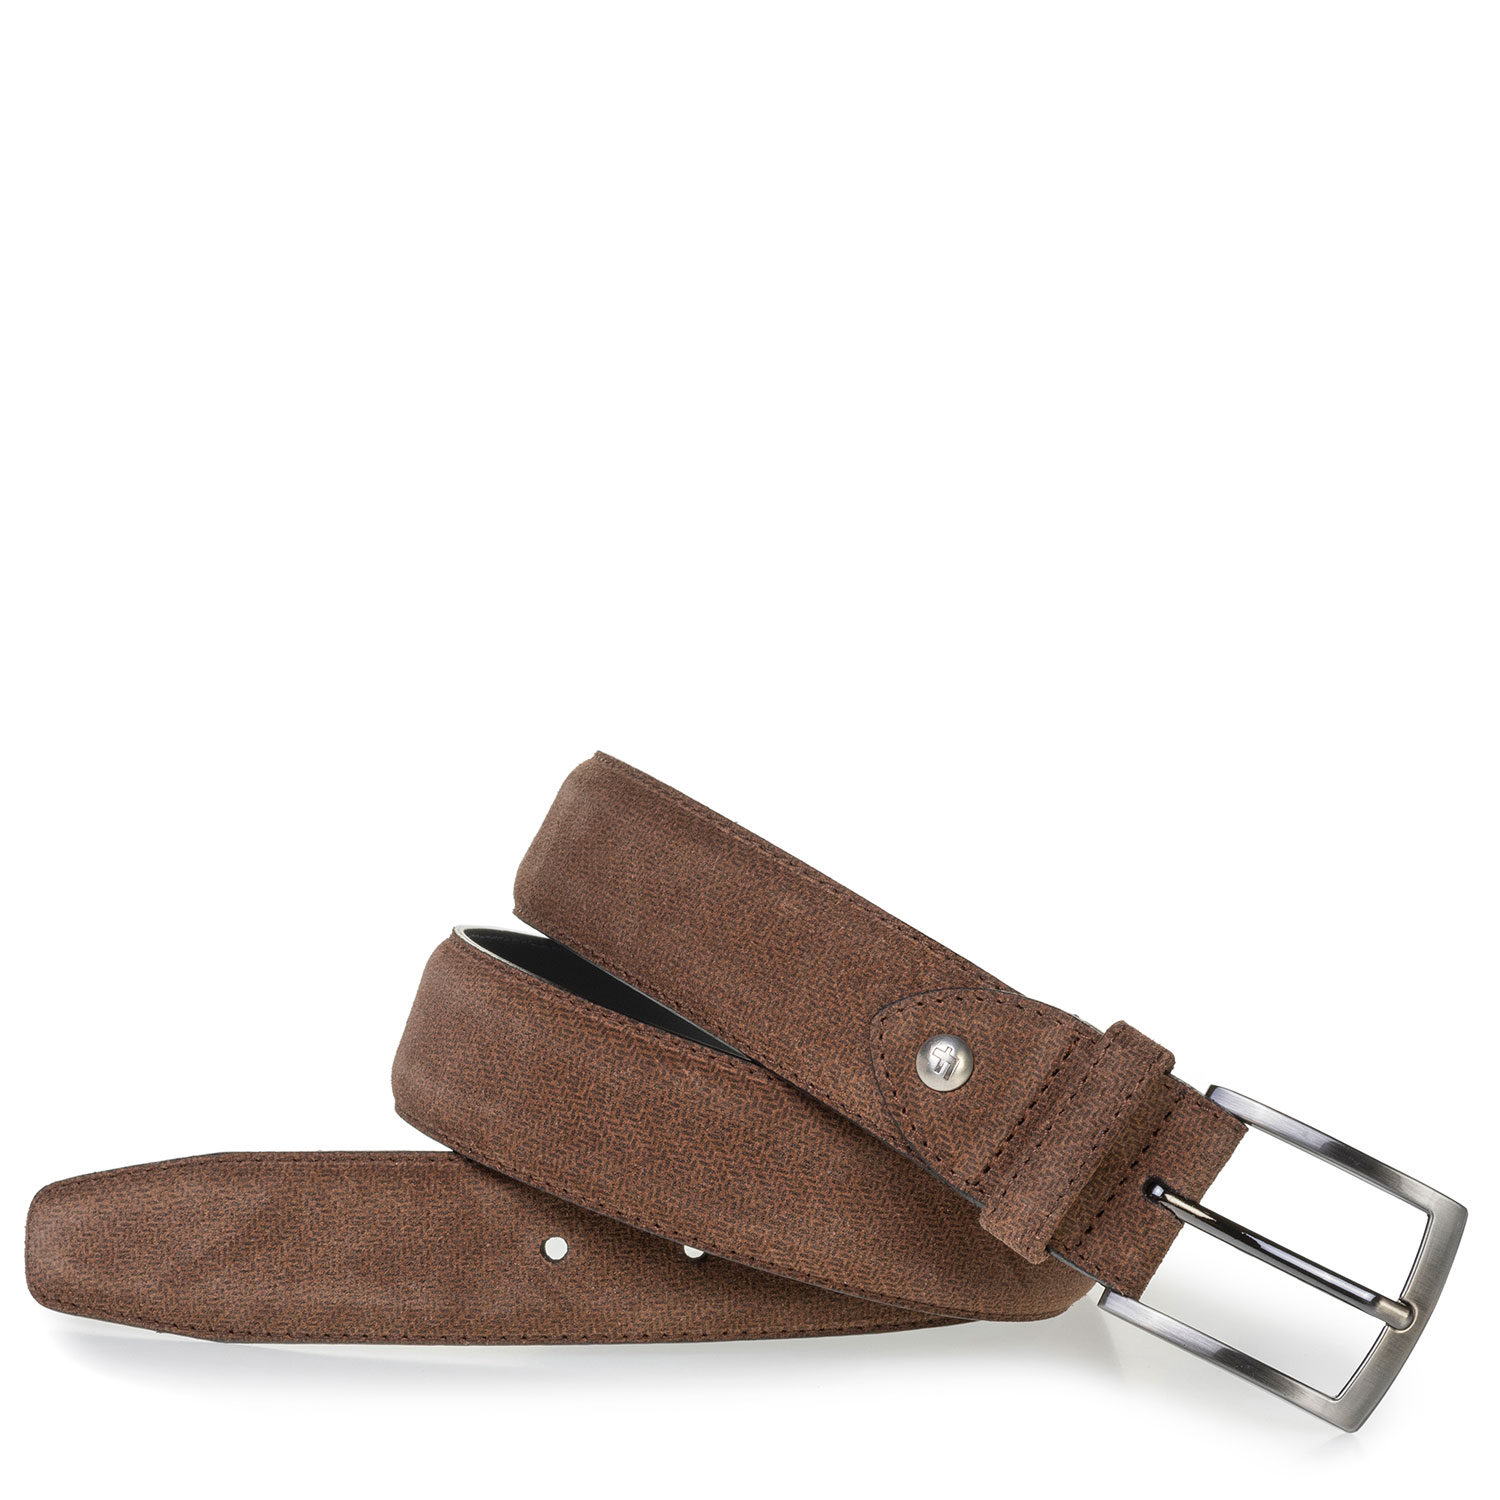 75201/72 - Cognac-coloured suede leather belt with print